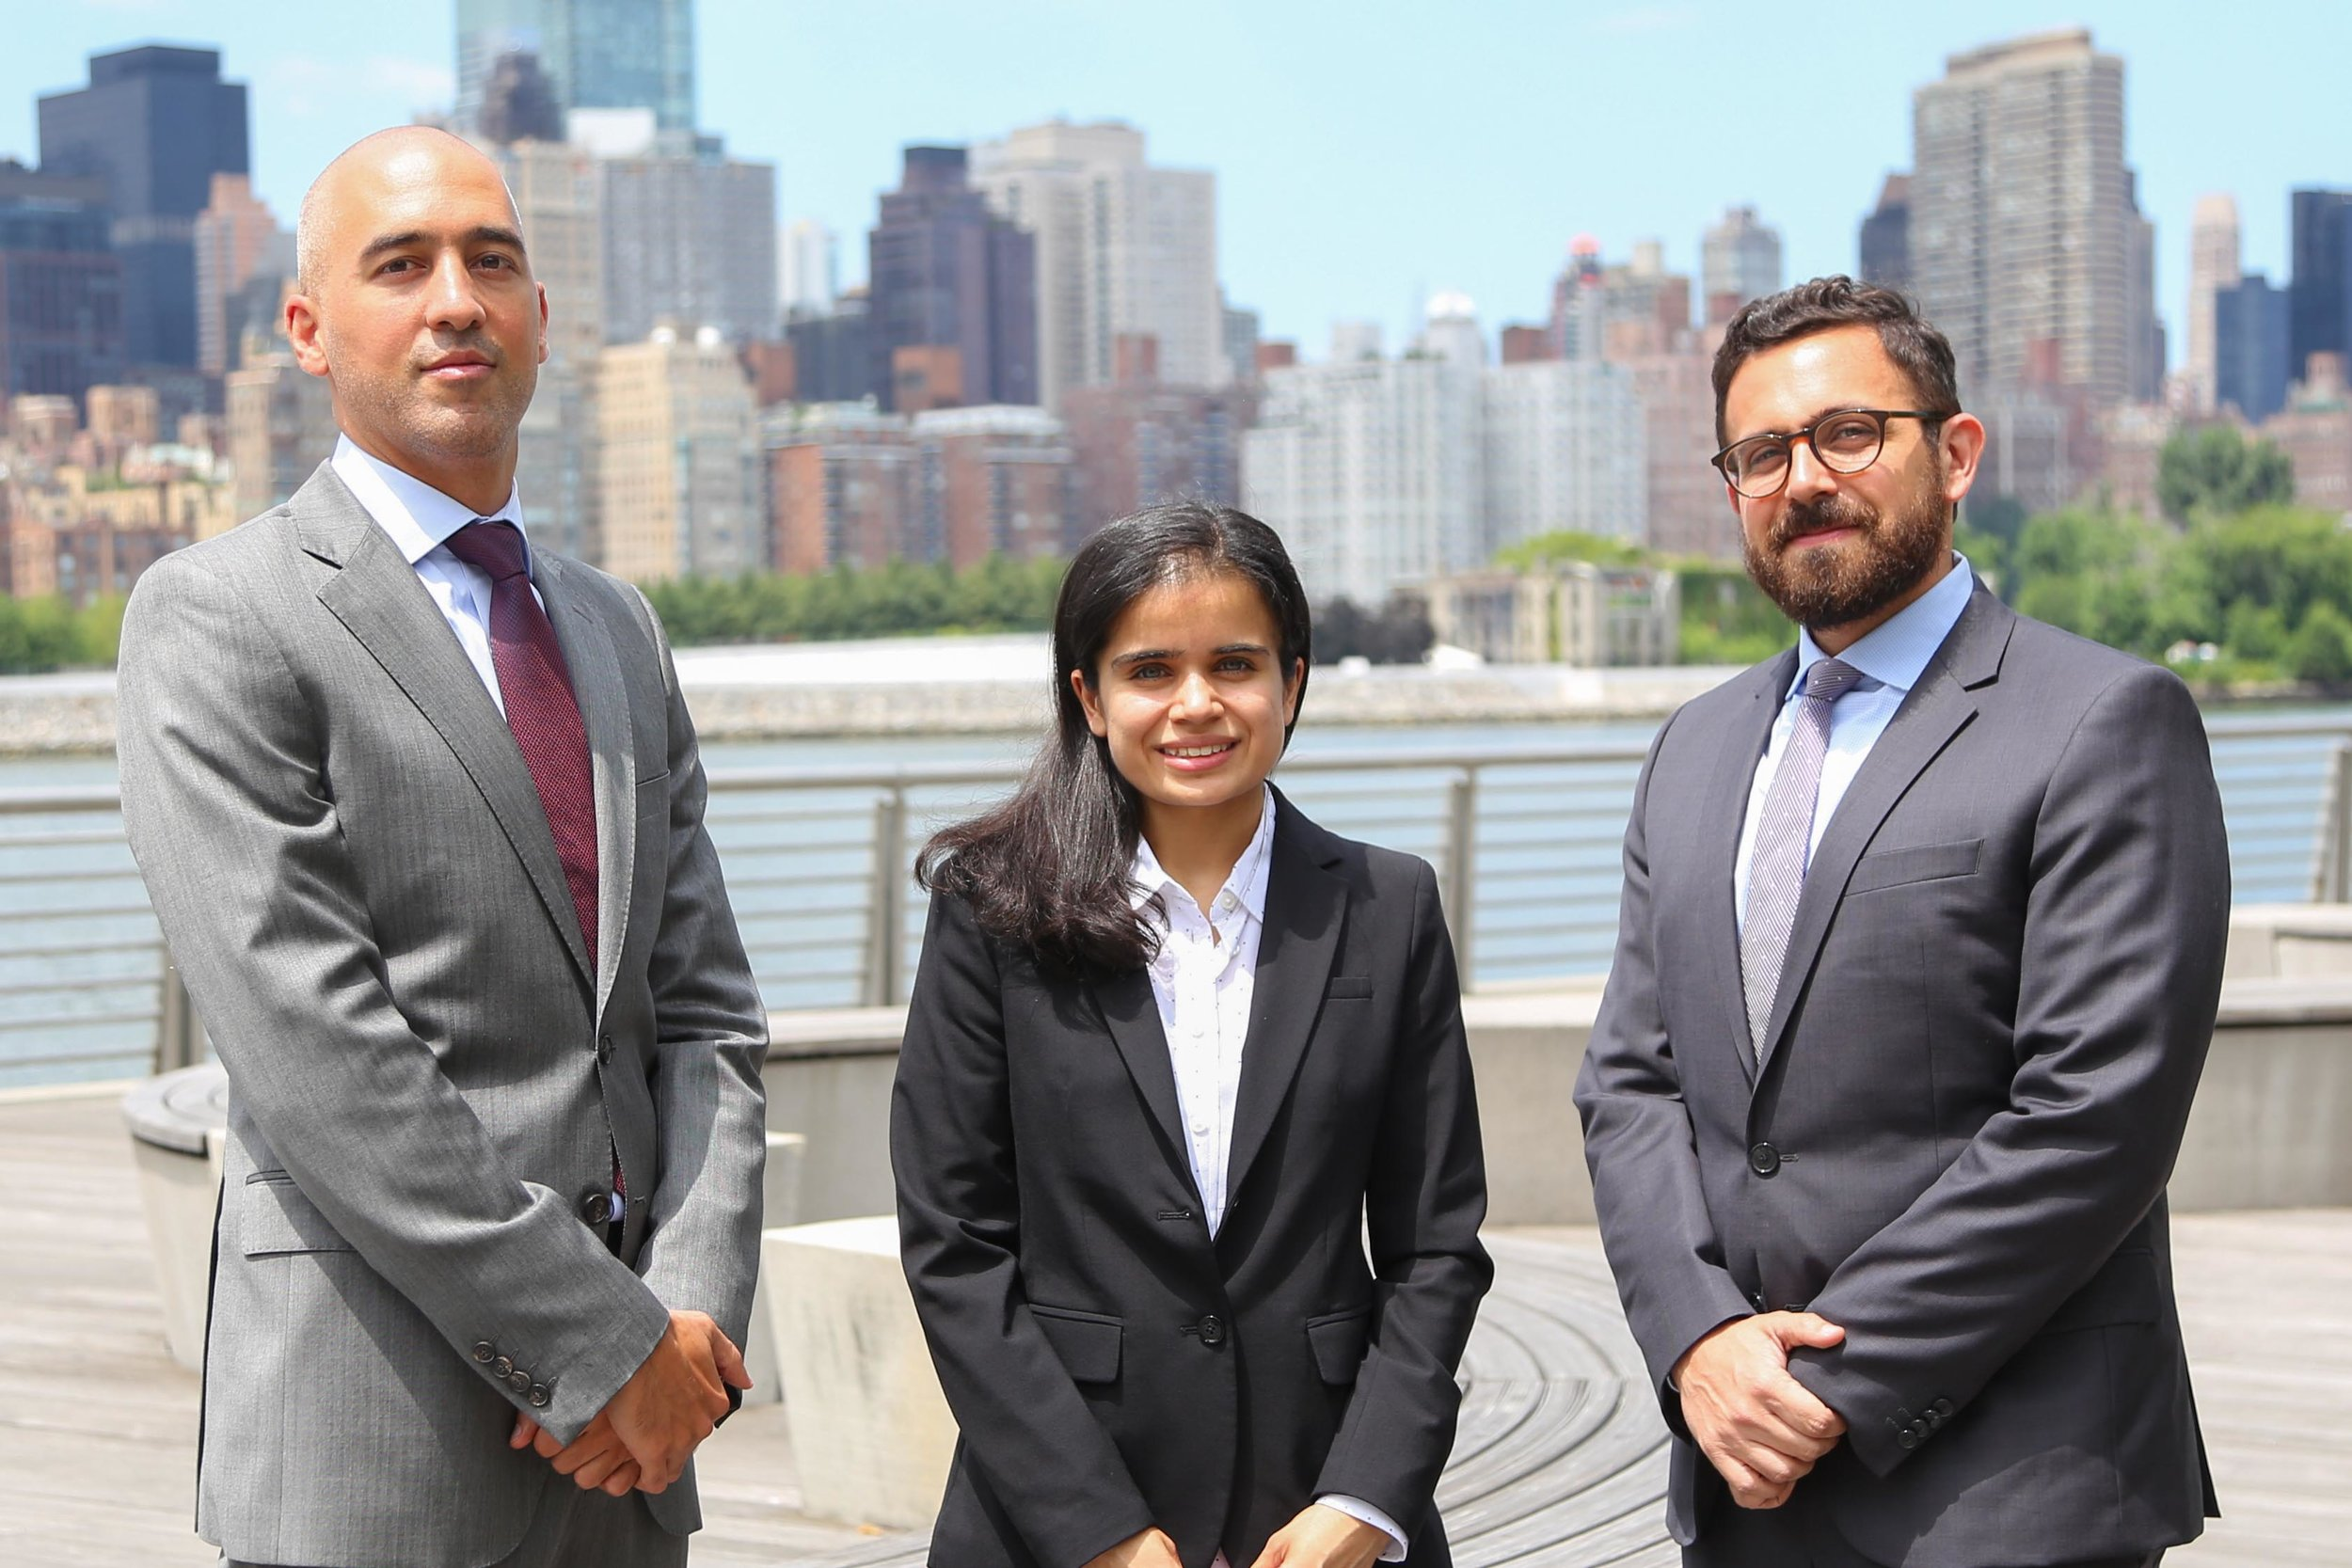 Our mission is CLEAR - The Creating Law Enforcement Accountability & Responsibility (CLEAR) project's mandate is to support Muslim, Arab, South Asian, and all other communities in the New York City area and beyond that are targeted by local, state, or federal government agencies under the guise of national security and counterterrorism.